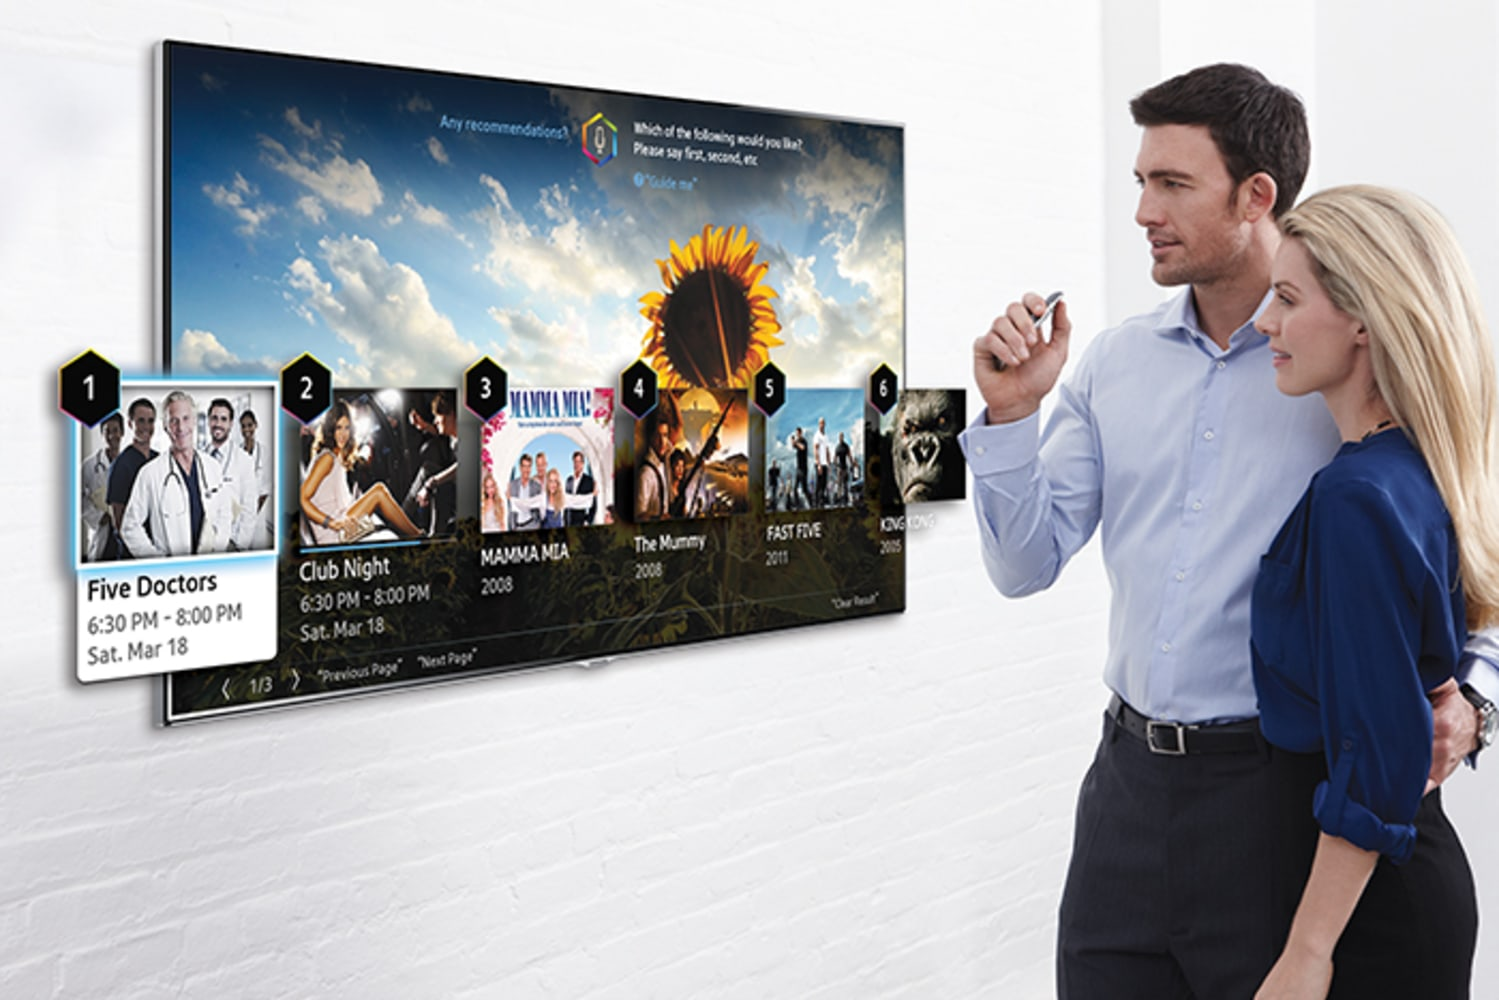 Samsung's new smart TV doesn't mean the end of the remote control